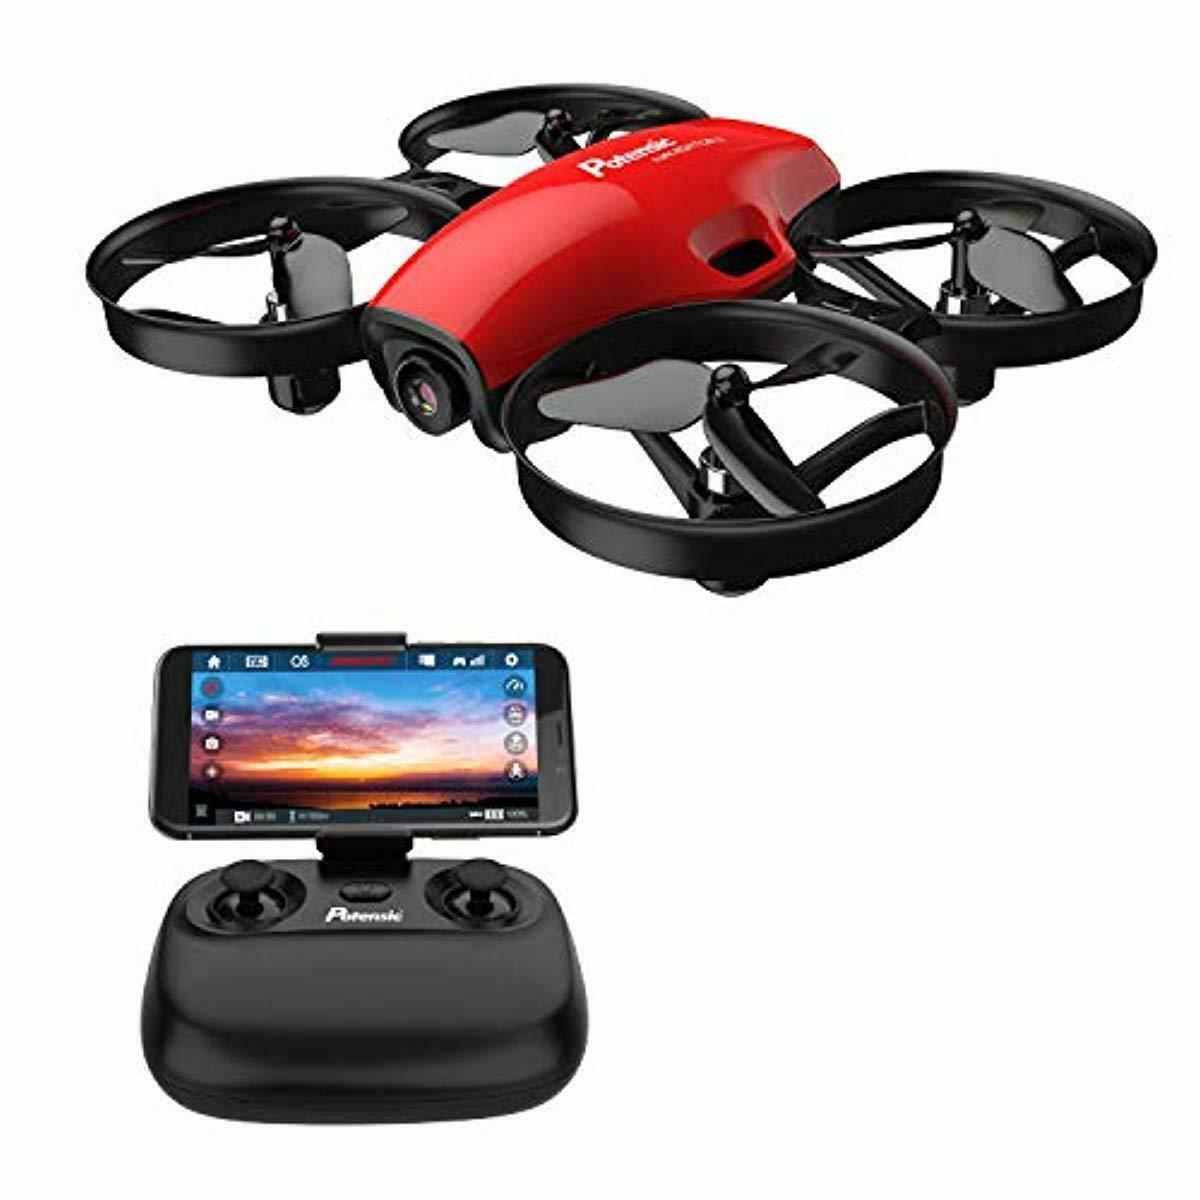 Dron Drone Con Camara De Video Wifi Control Remoto Recargable Android iPhone App